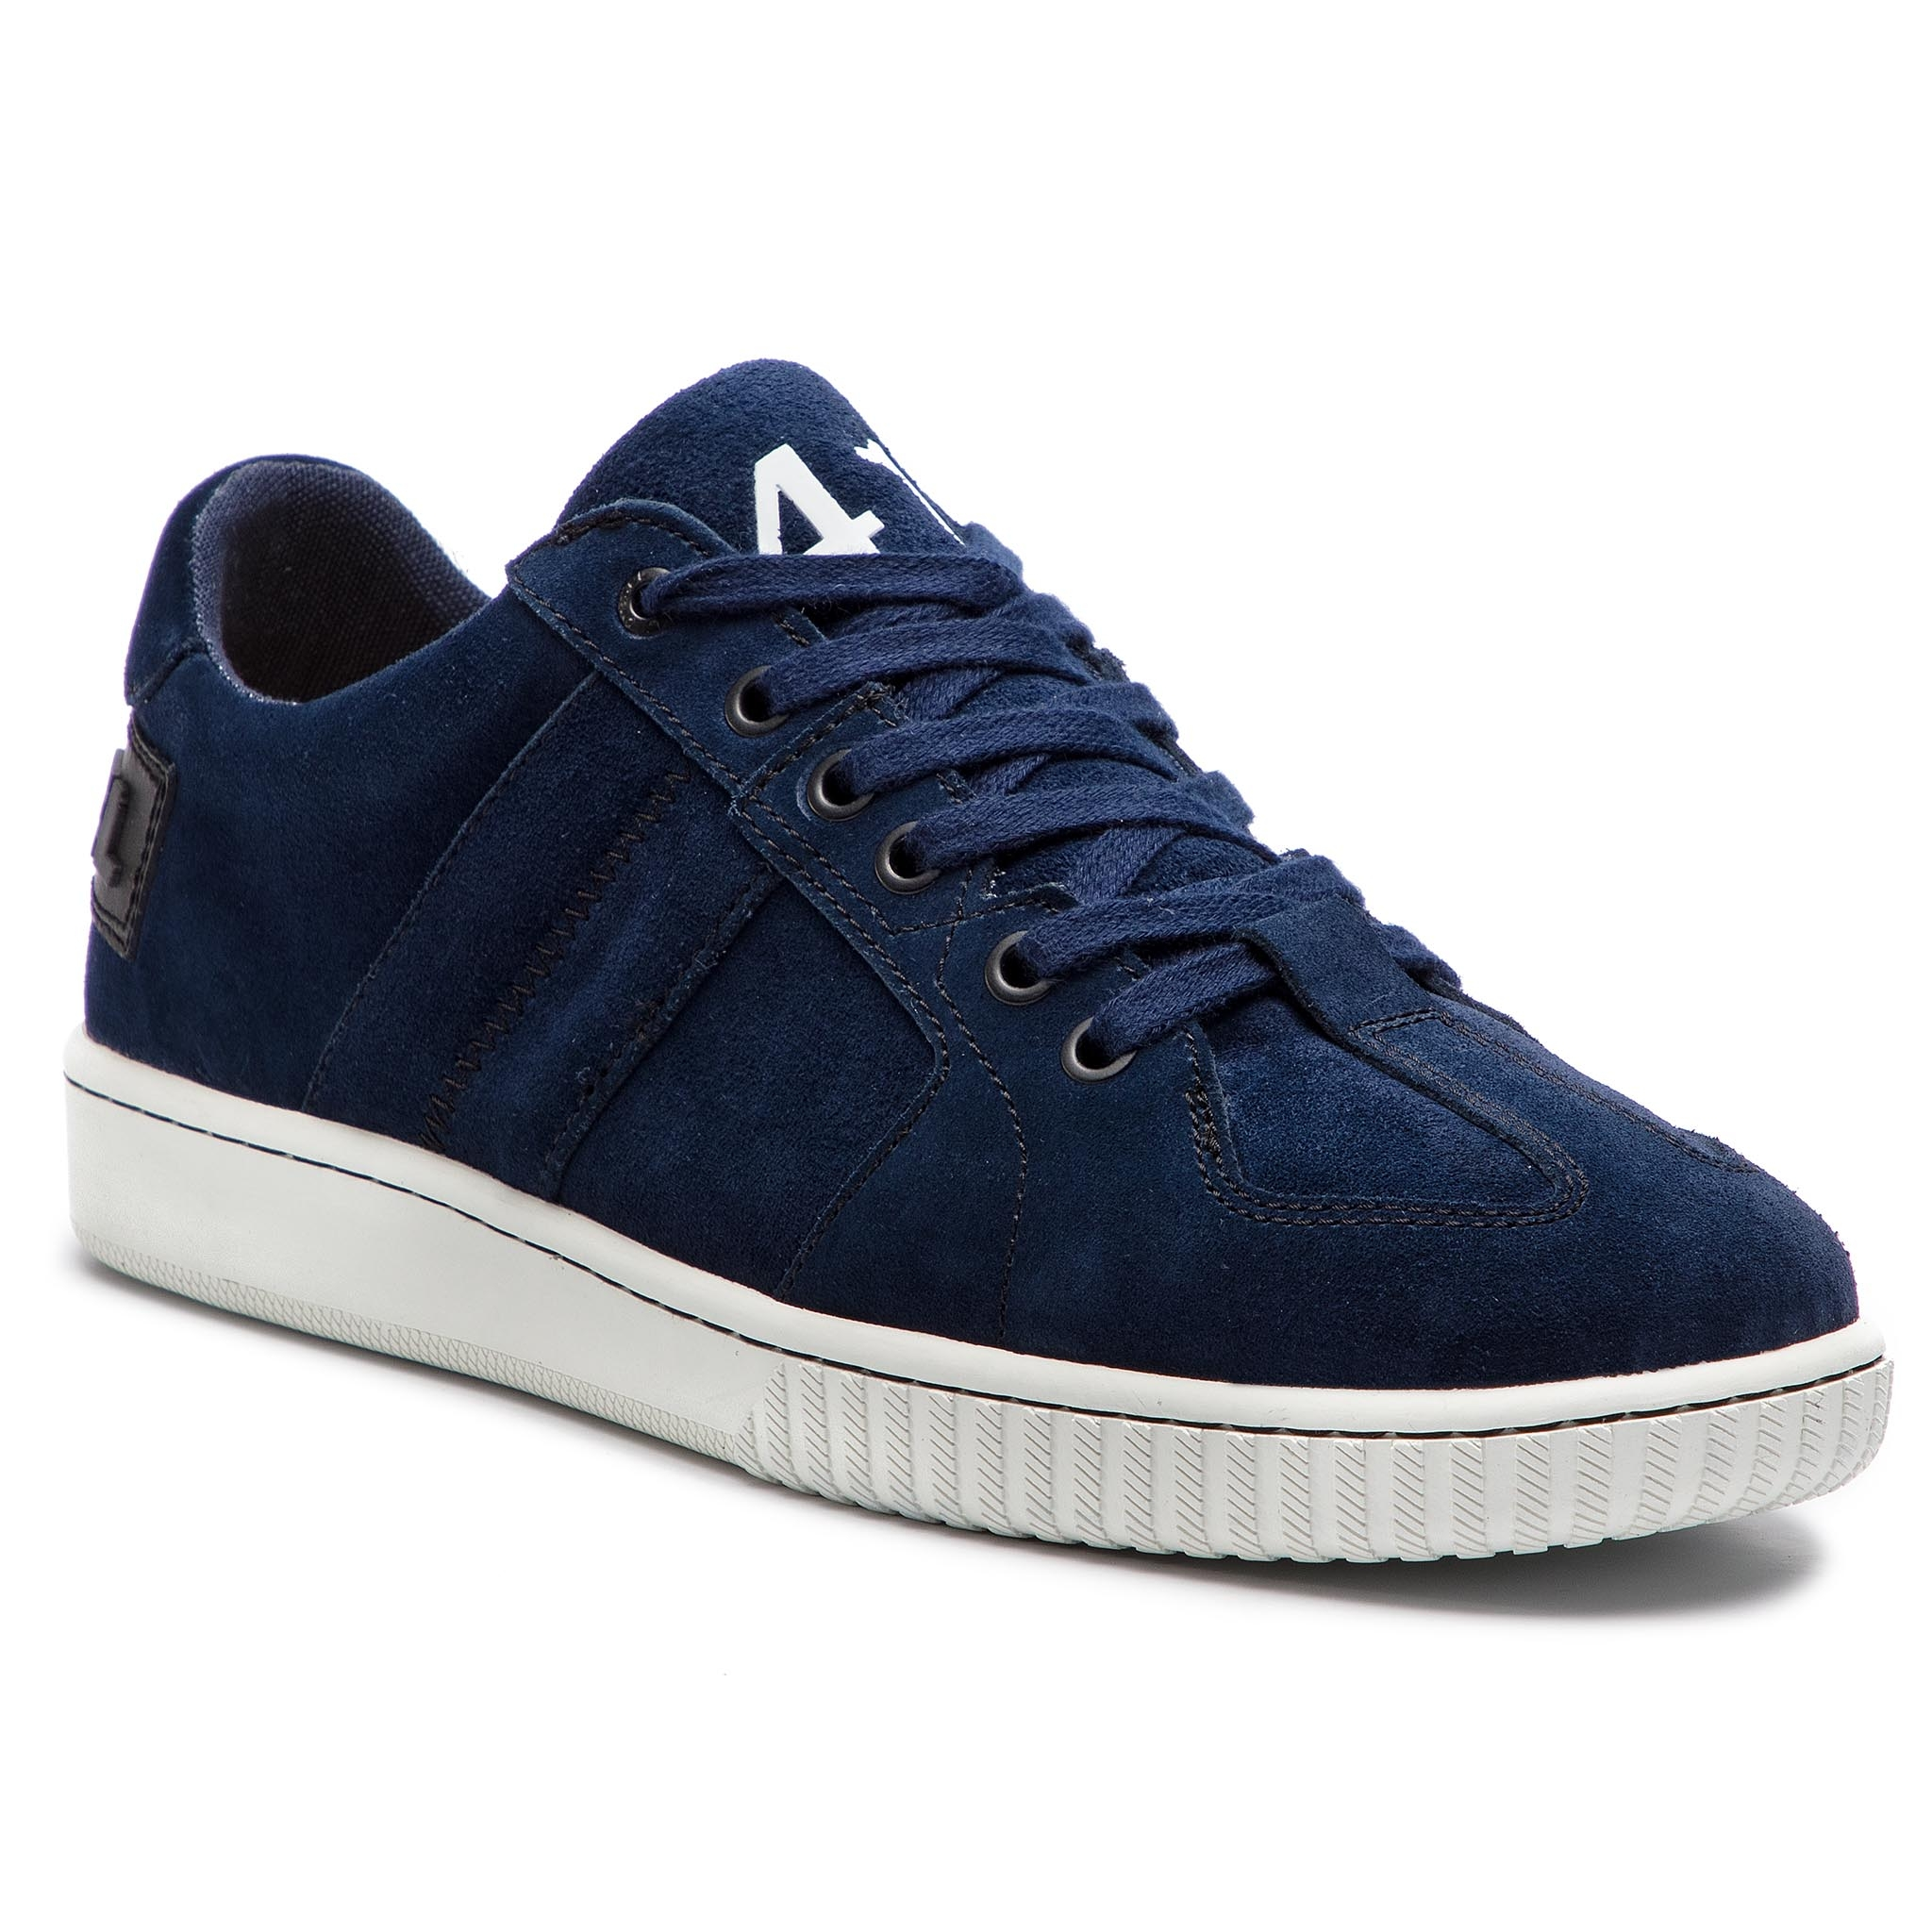 Sneakers MARC O'POLO 807 25013401 300 Navy 890 Sneakers